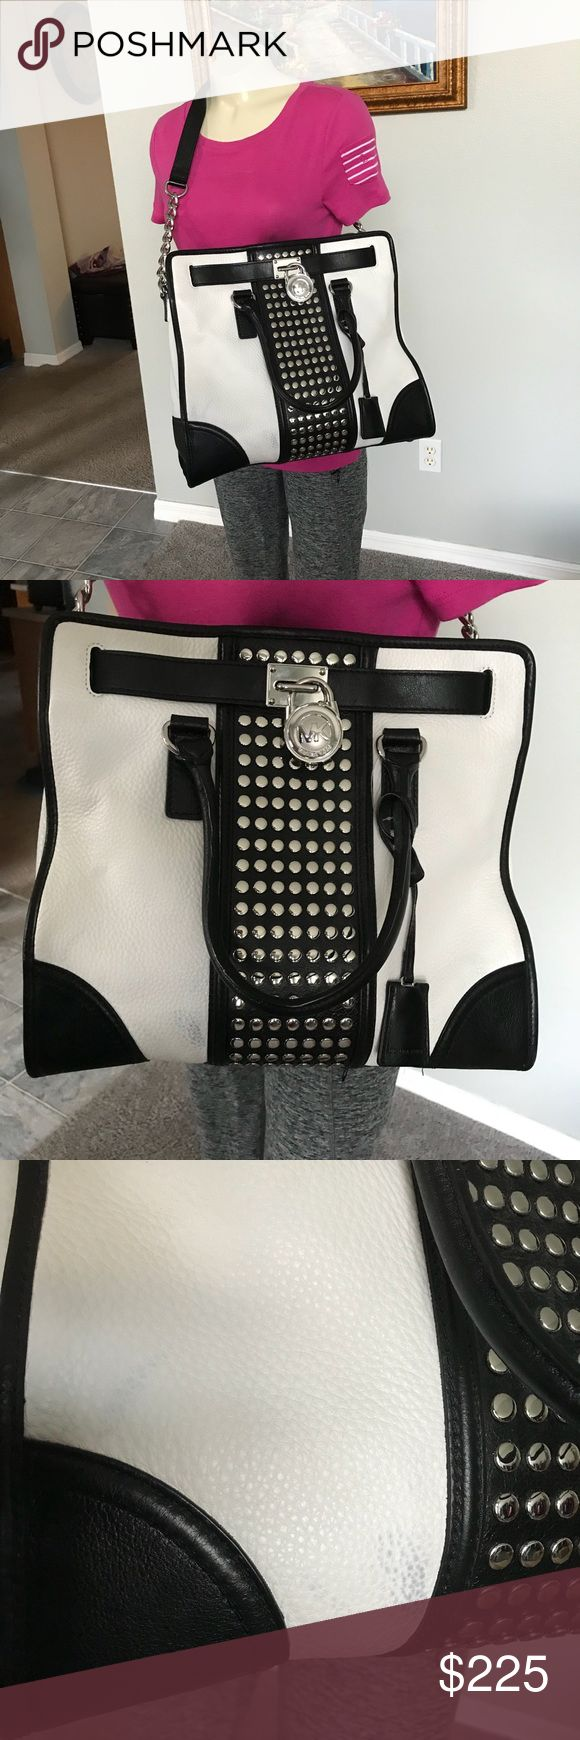 "Michael Kors Hamilton NS Studded Tote MICHAEL Michael Kors Hamilton Center-Stripe Studded Tote STYLE #30T4SHET3L Black/white leather with studded center stripe. Top handles with rings, 5"" drop. Chain shoulder strap. Frame top with logo-engraved lock; magnetic snap closure. Hanging luggage tag with suspended key. Inside, one zip pocket and two open pockets. 14""H x 13""W x 6 1/4""D. Gently Pre Owned Condition, Interior is in great condition, Leather is Soft.. Has a smudge on the left hand side…"